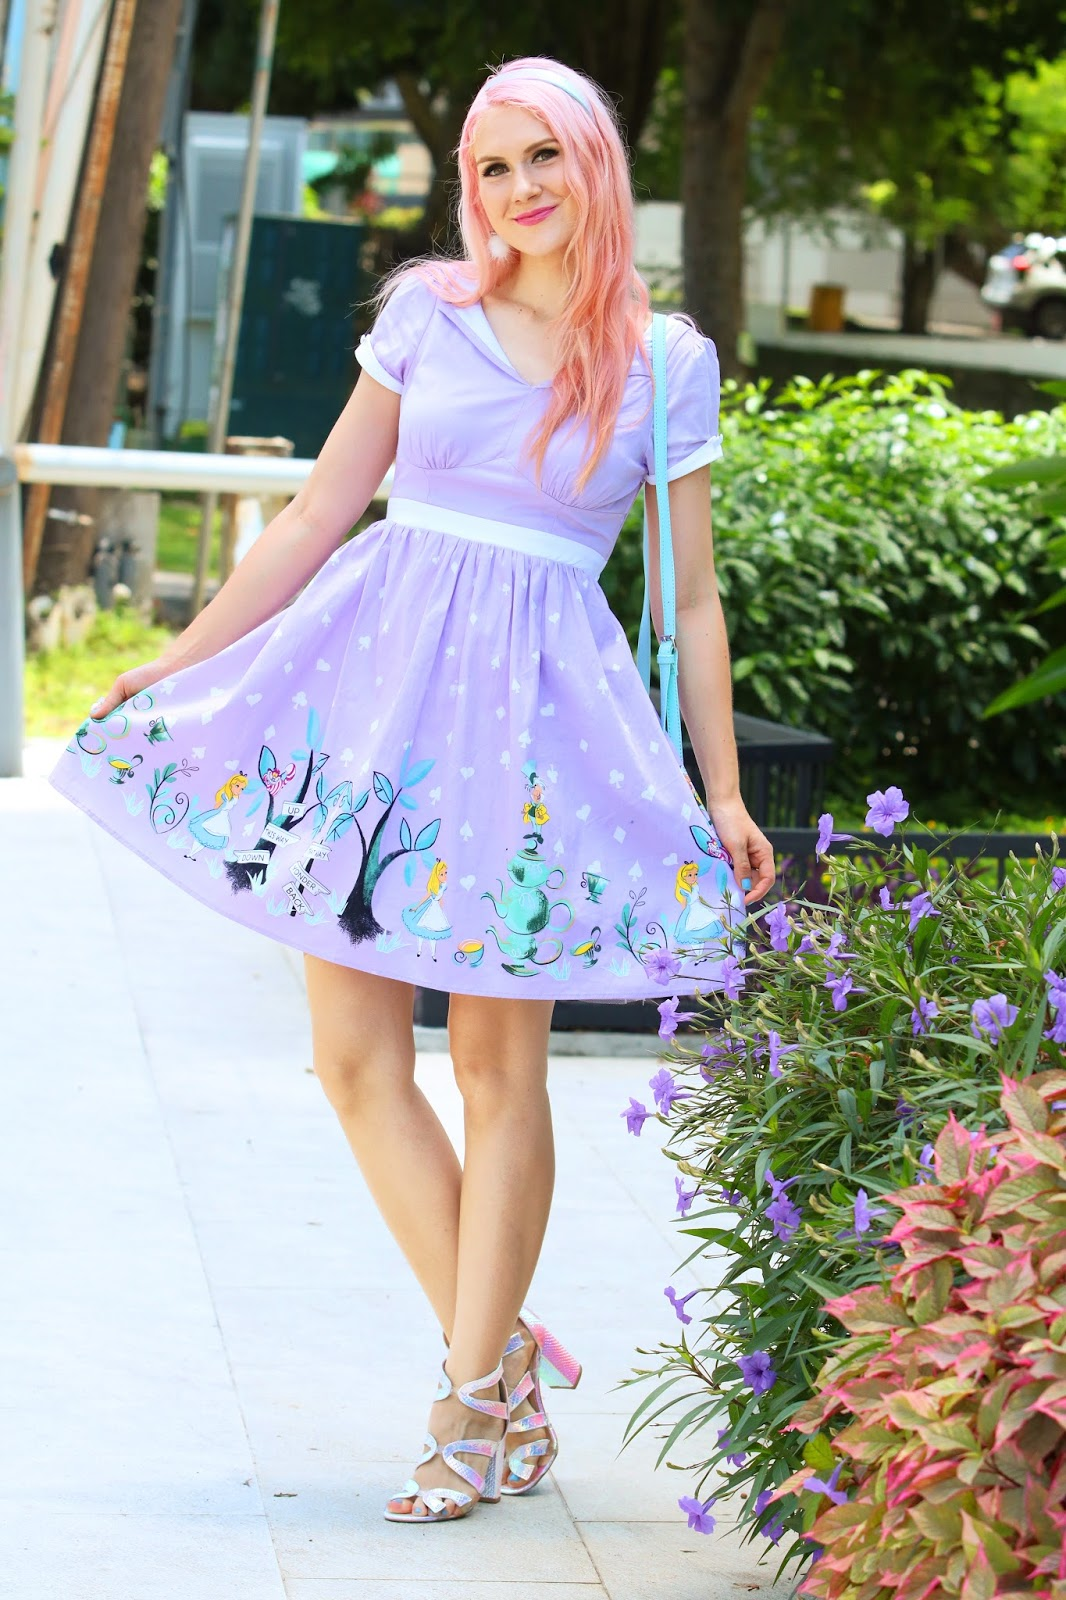 Alice in Wonderland Dress from Hot Topic